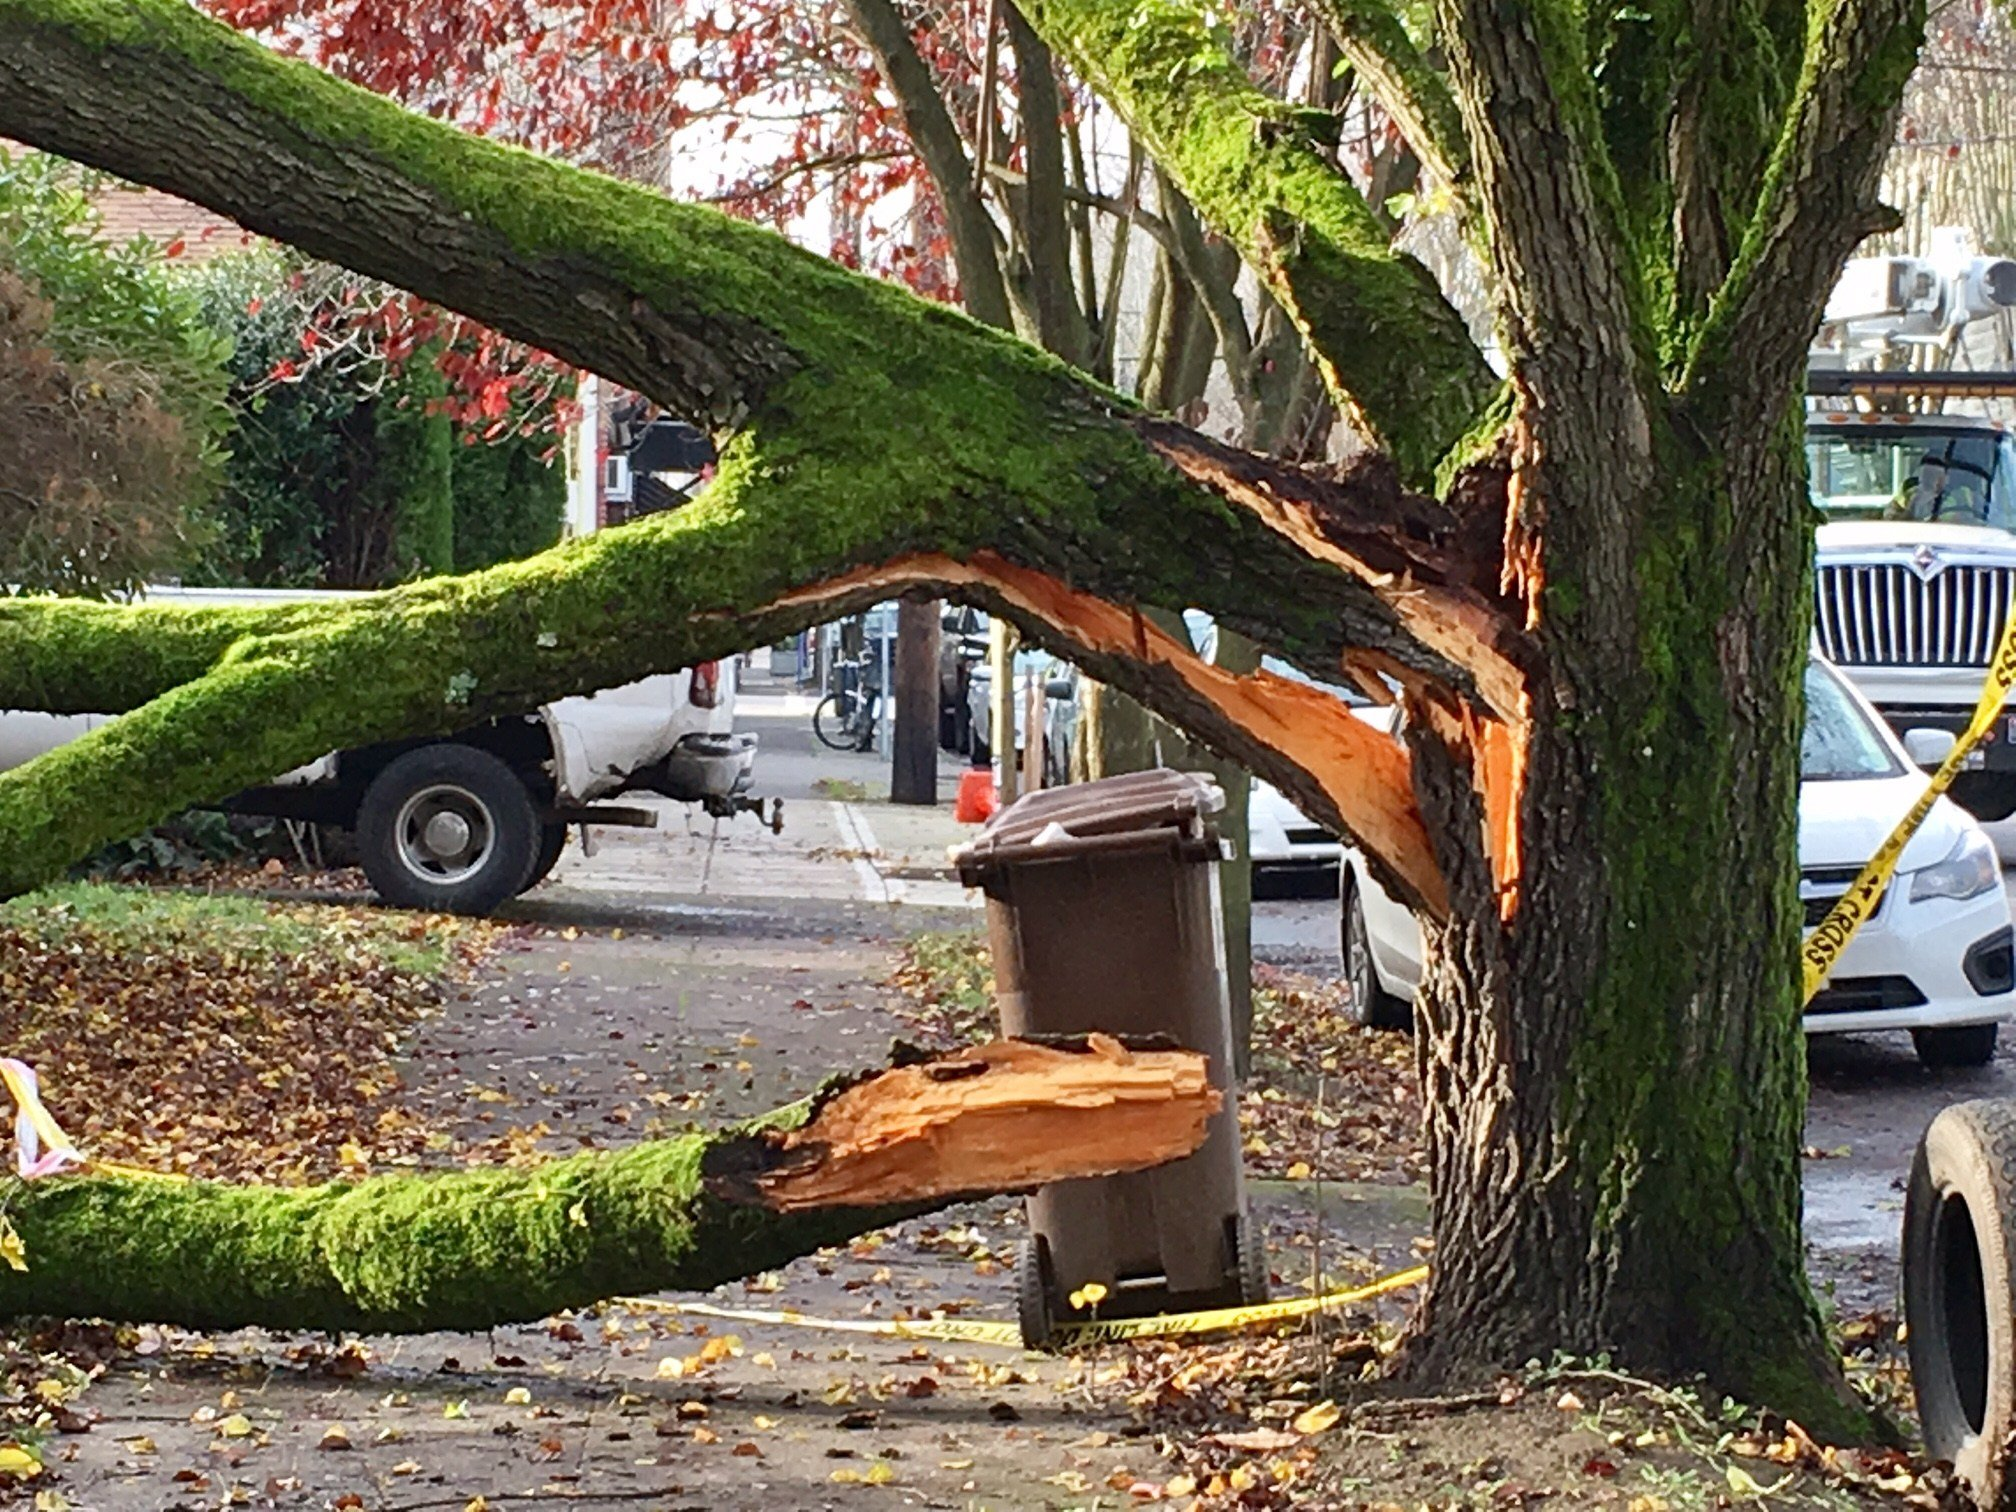 Some of the downed limbs crews worked to clear Tuesday.